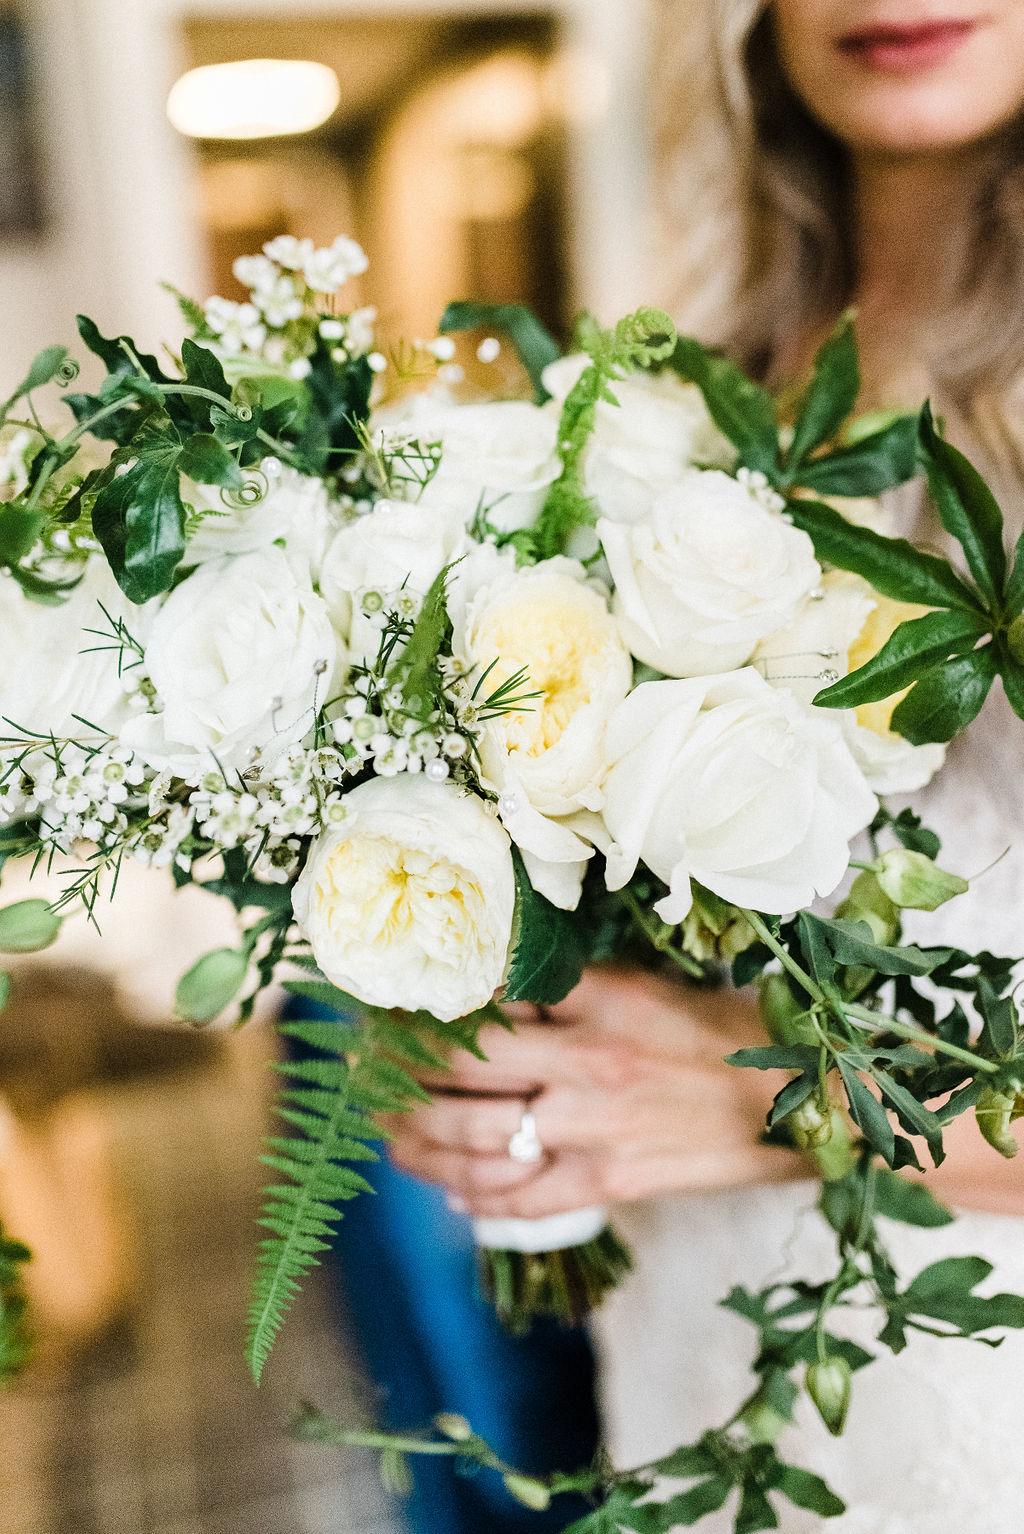 Brides bouquet with white roses, greenery and blue and white passion flowers - Pearl Weddings & Events